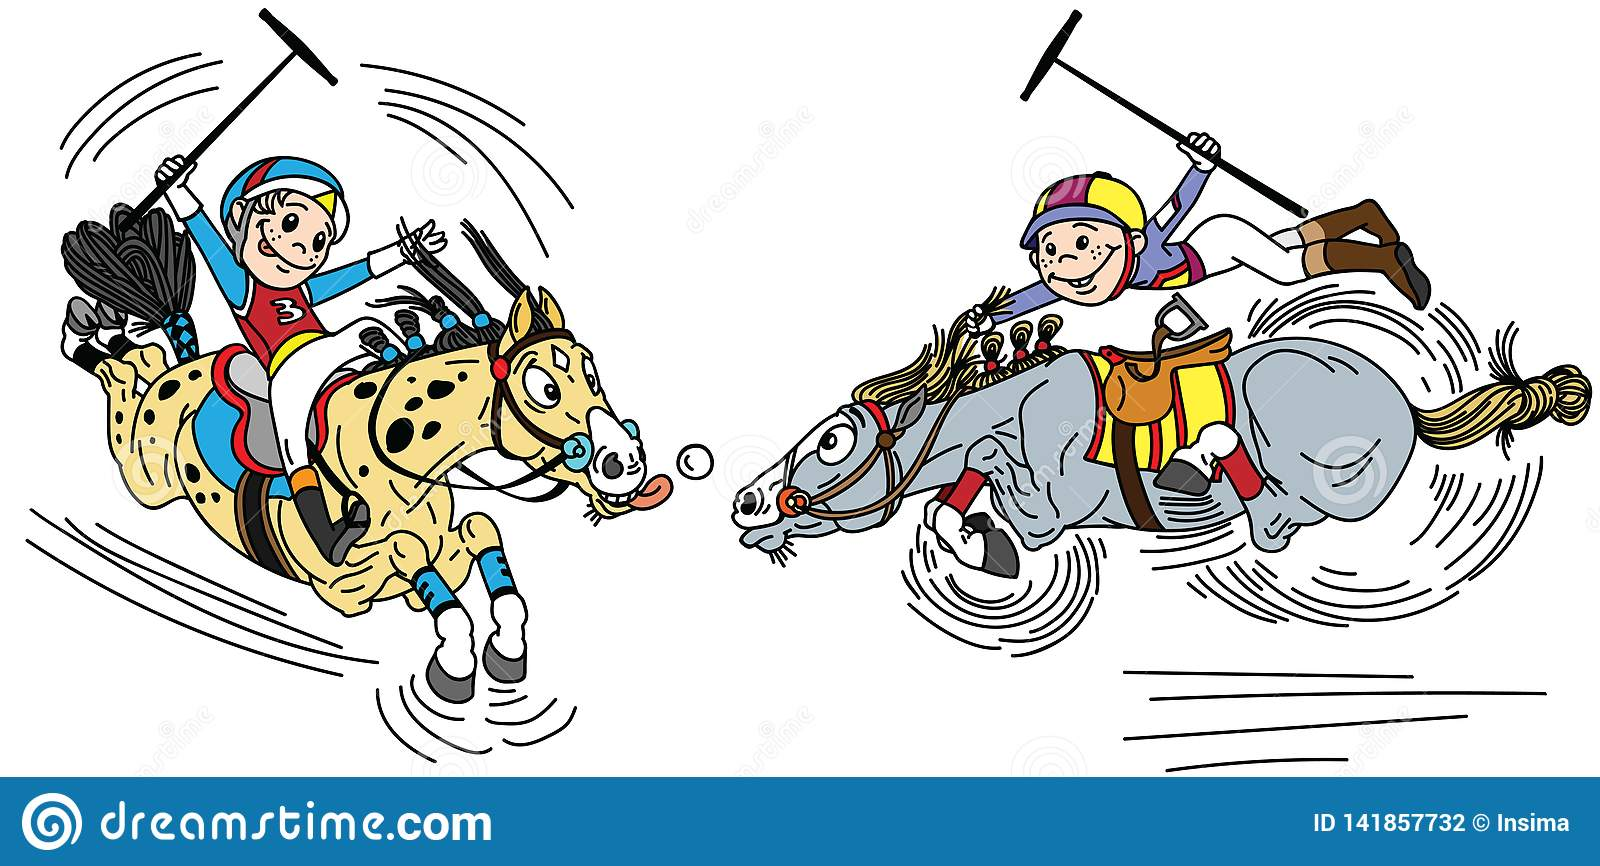 Polo Boy Royalty Free Cliparts, Vectors, And Stock Illustration. Image  10950945.